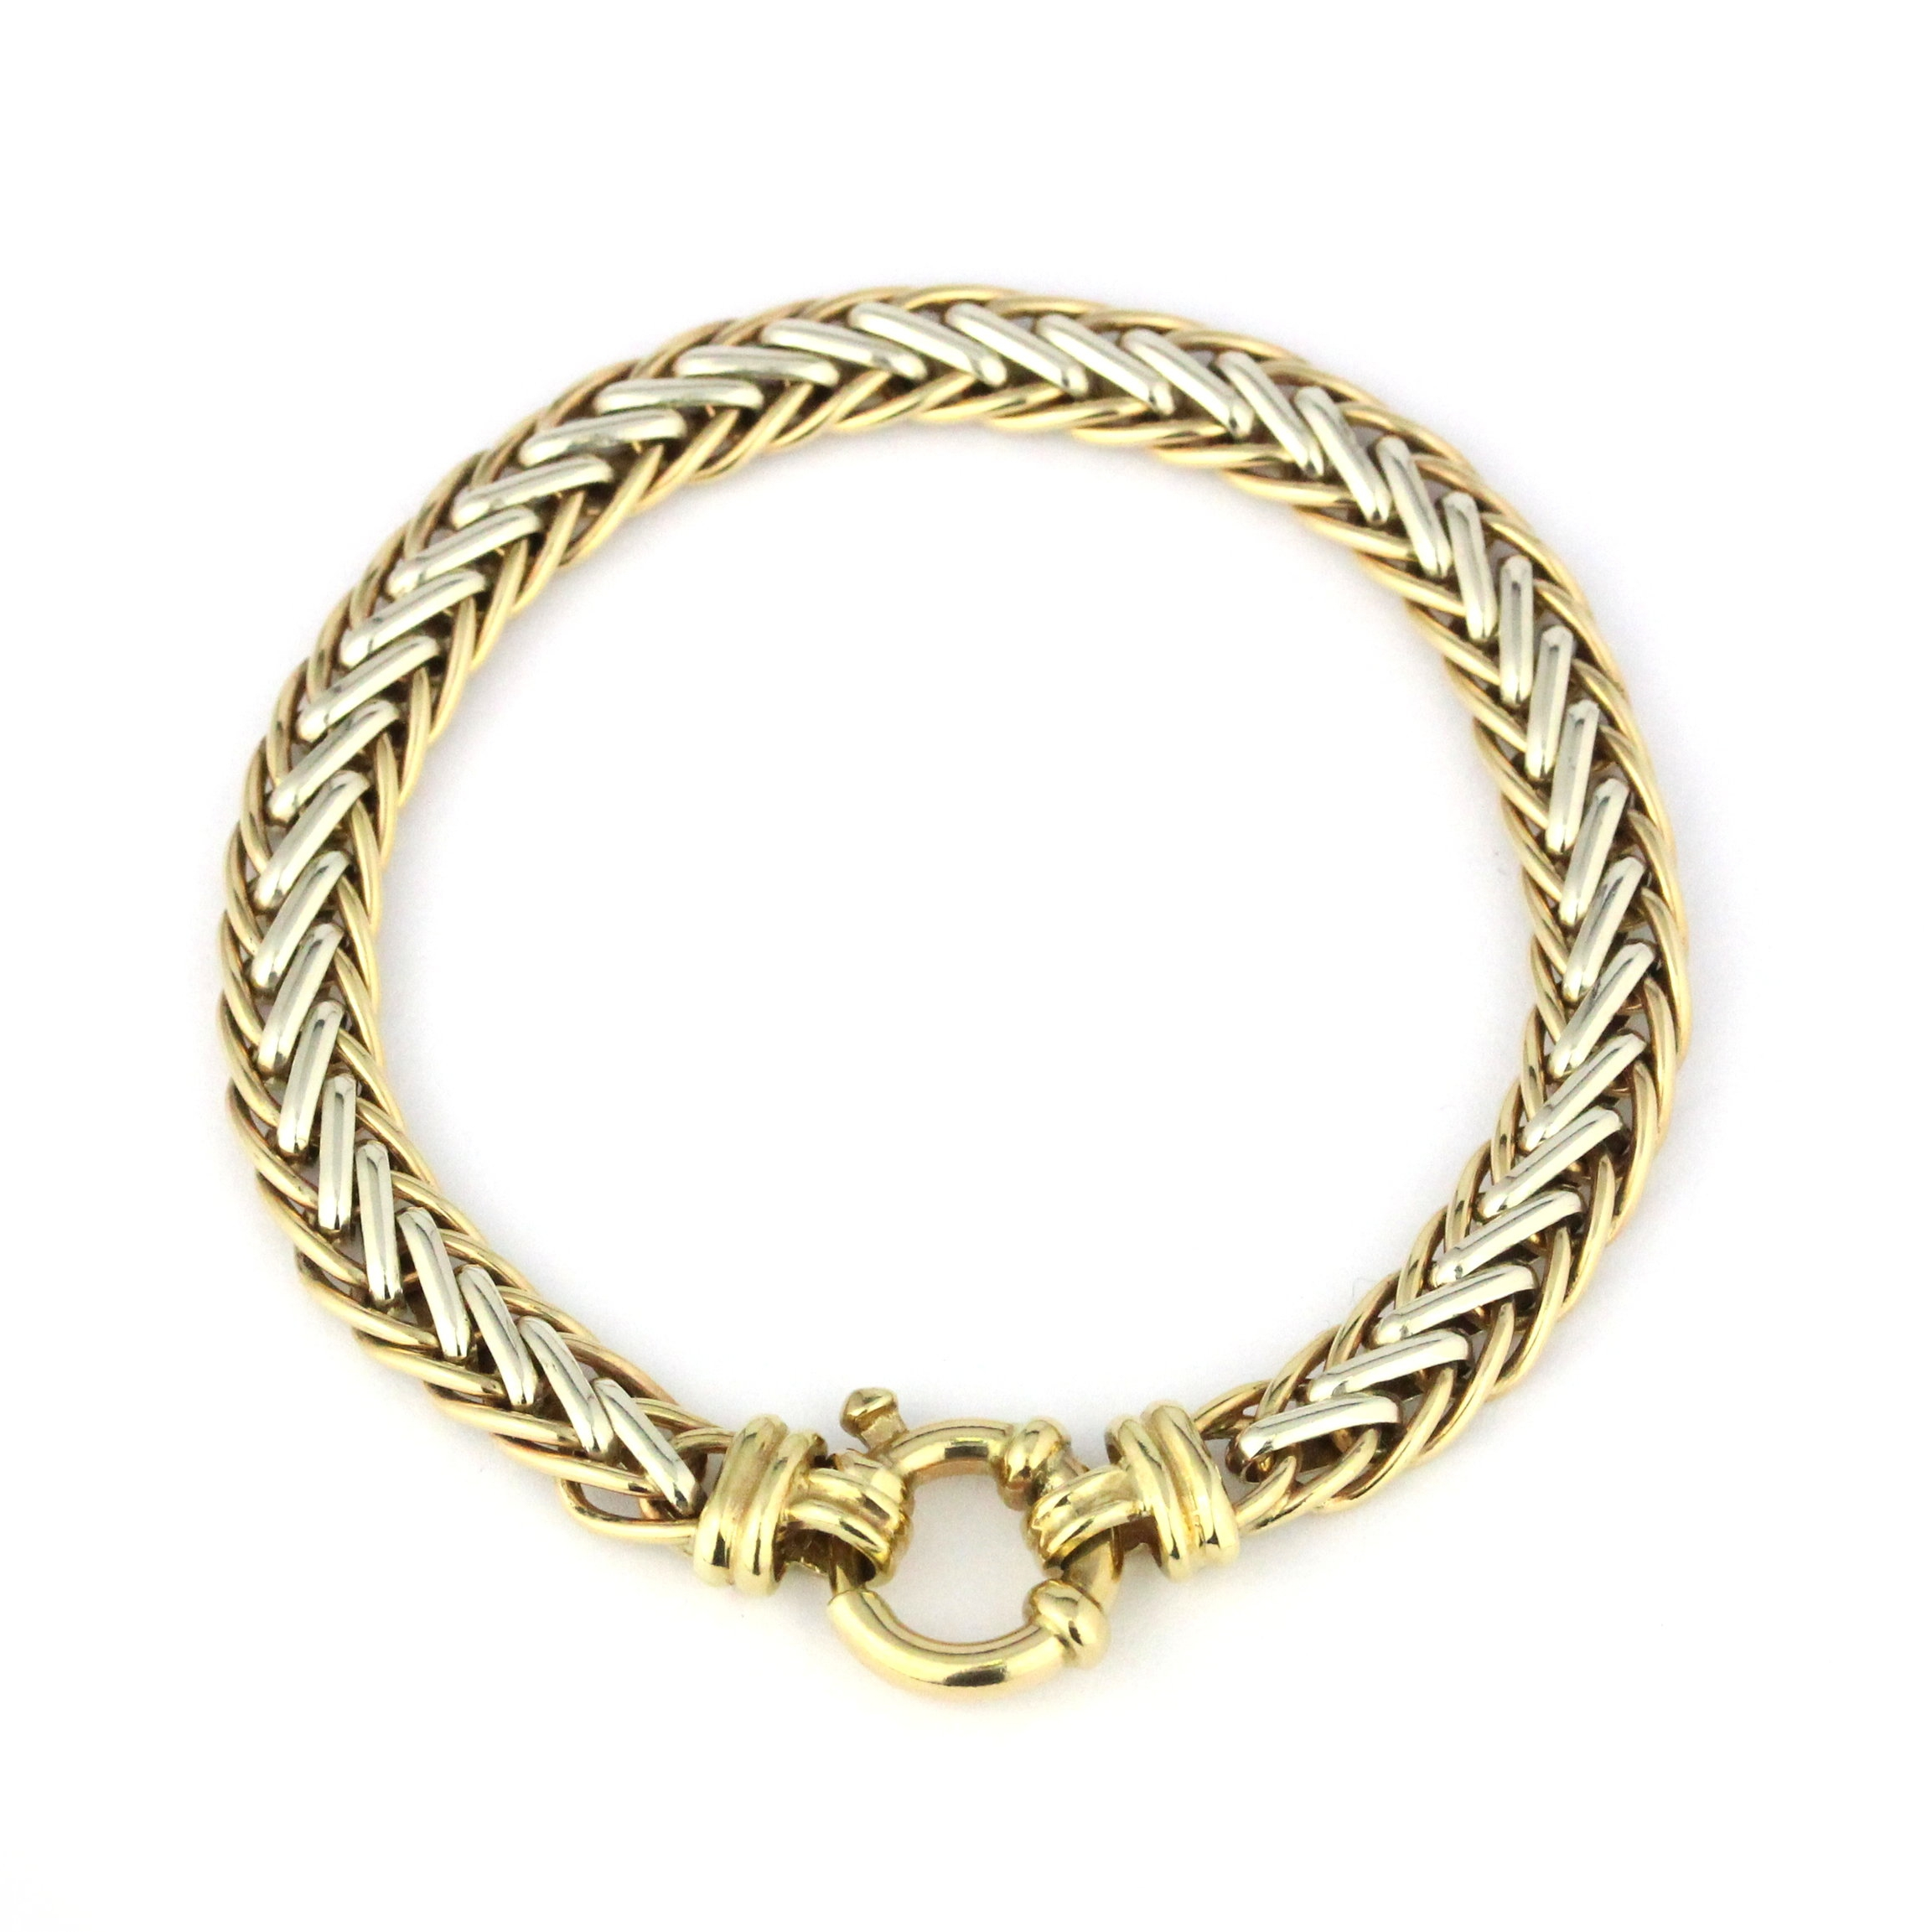 Yellow and white gold fishbone bracelet with bolt ring.